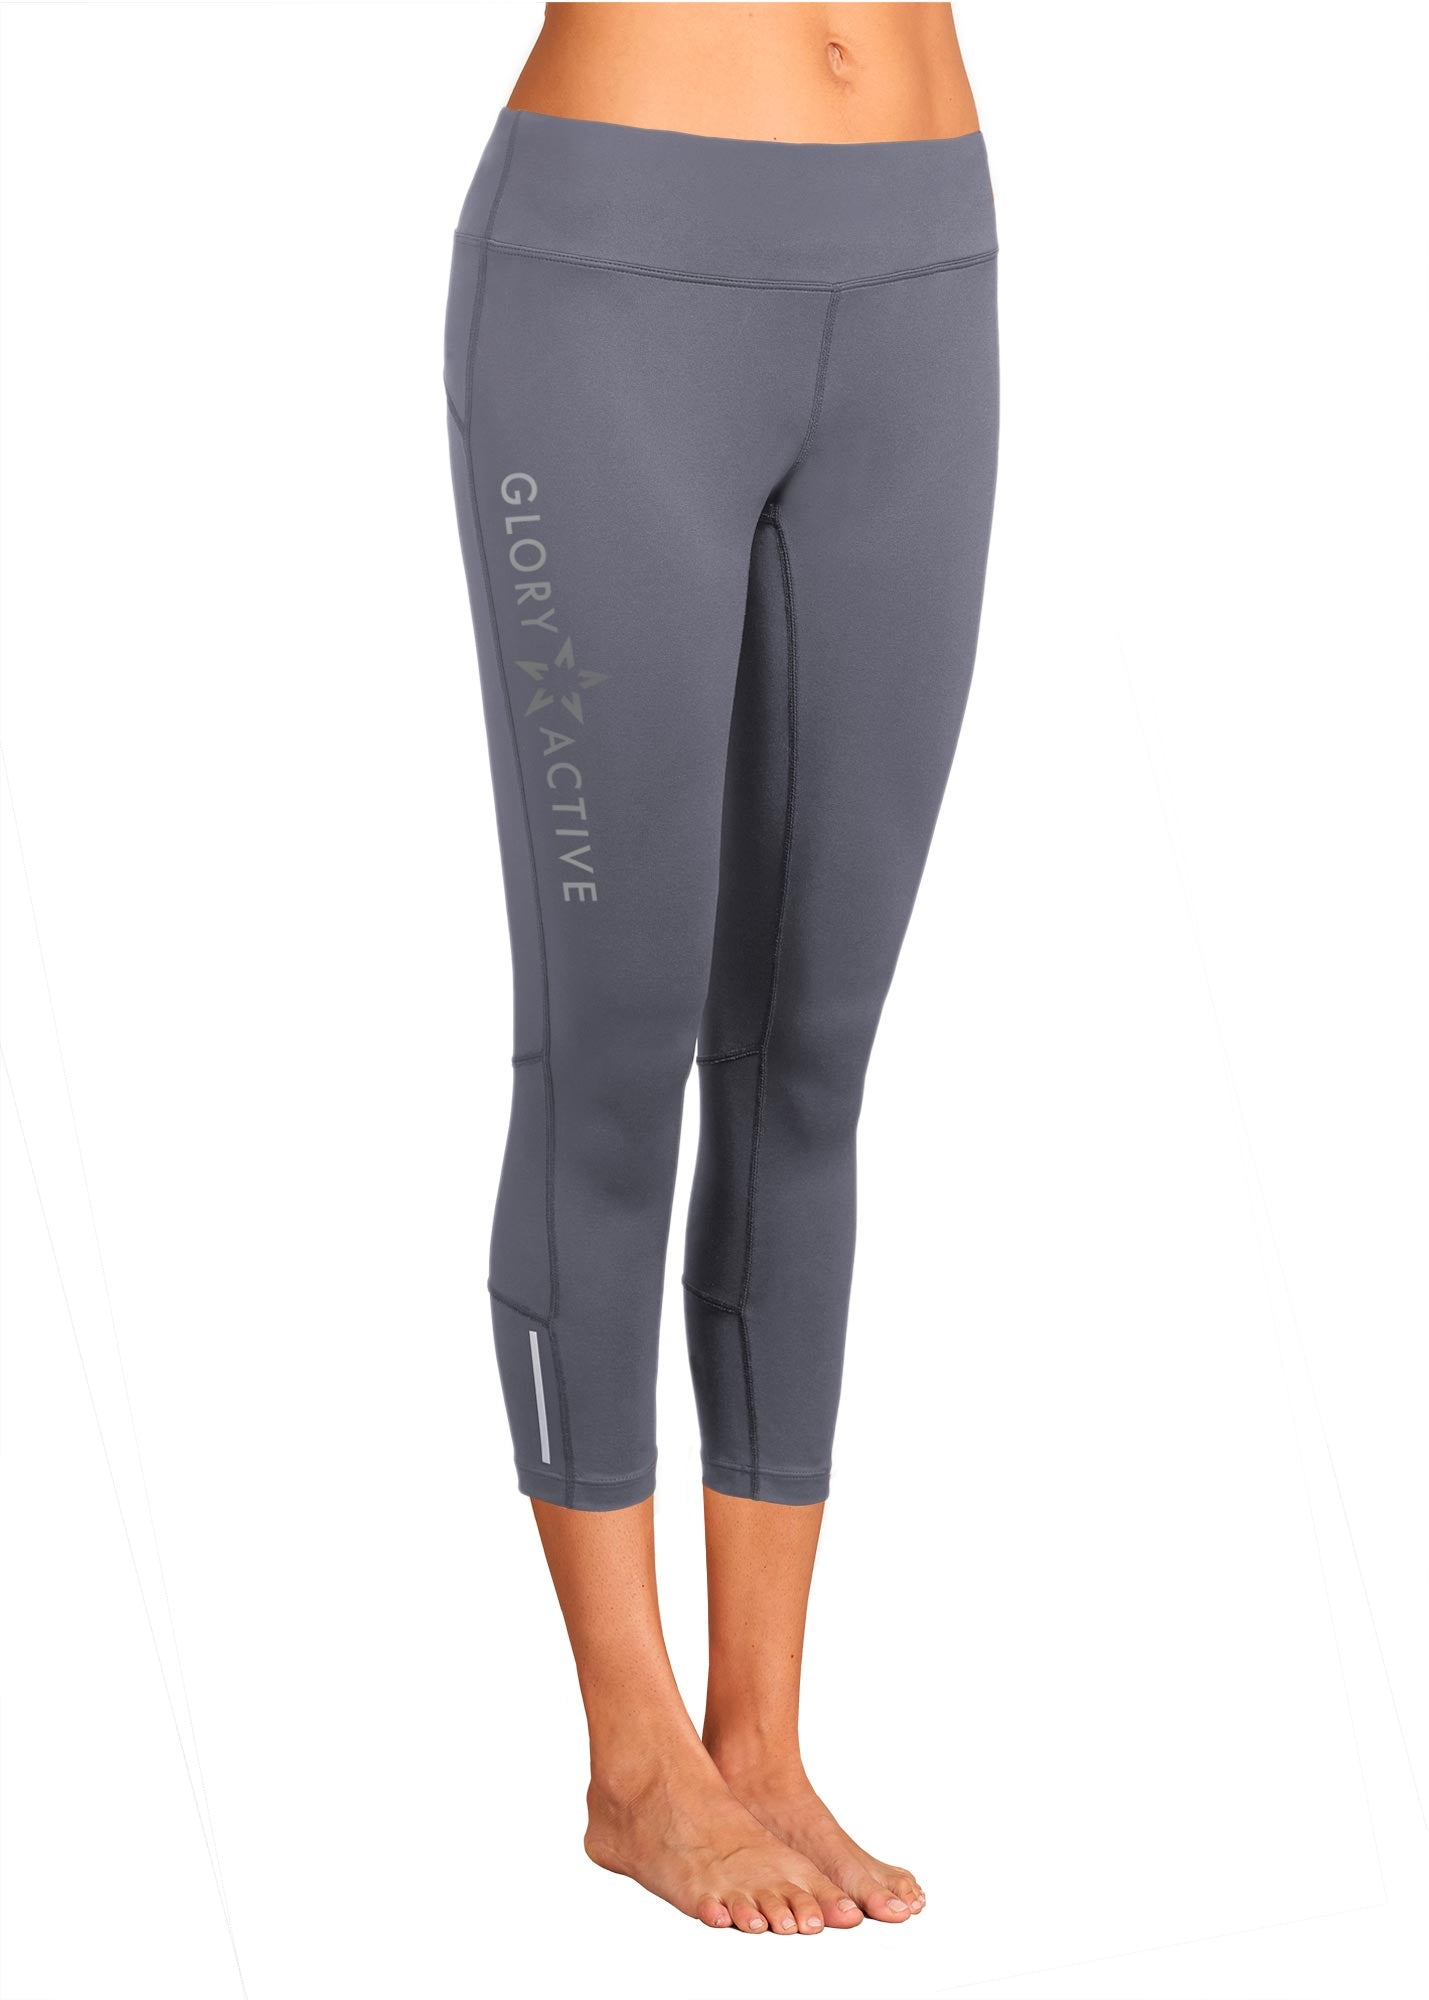 christian apparel all around capri legging glory active